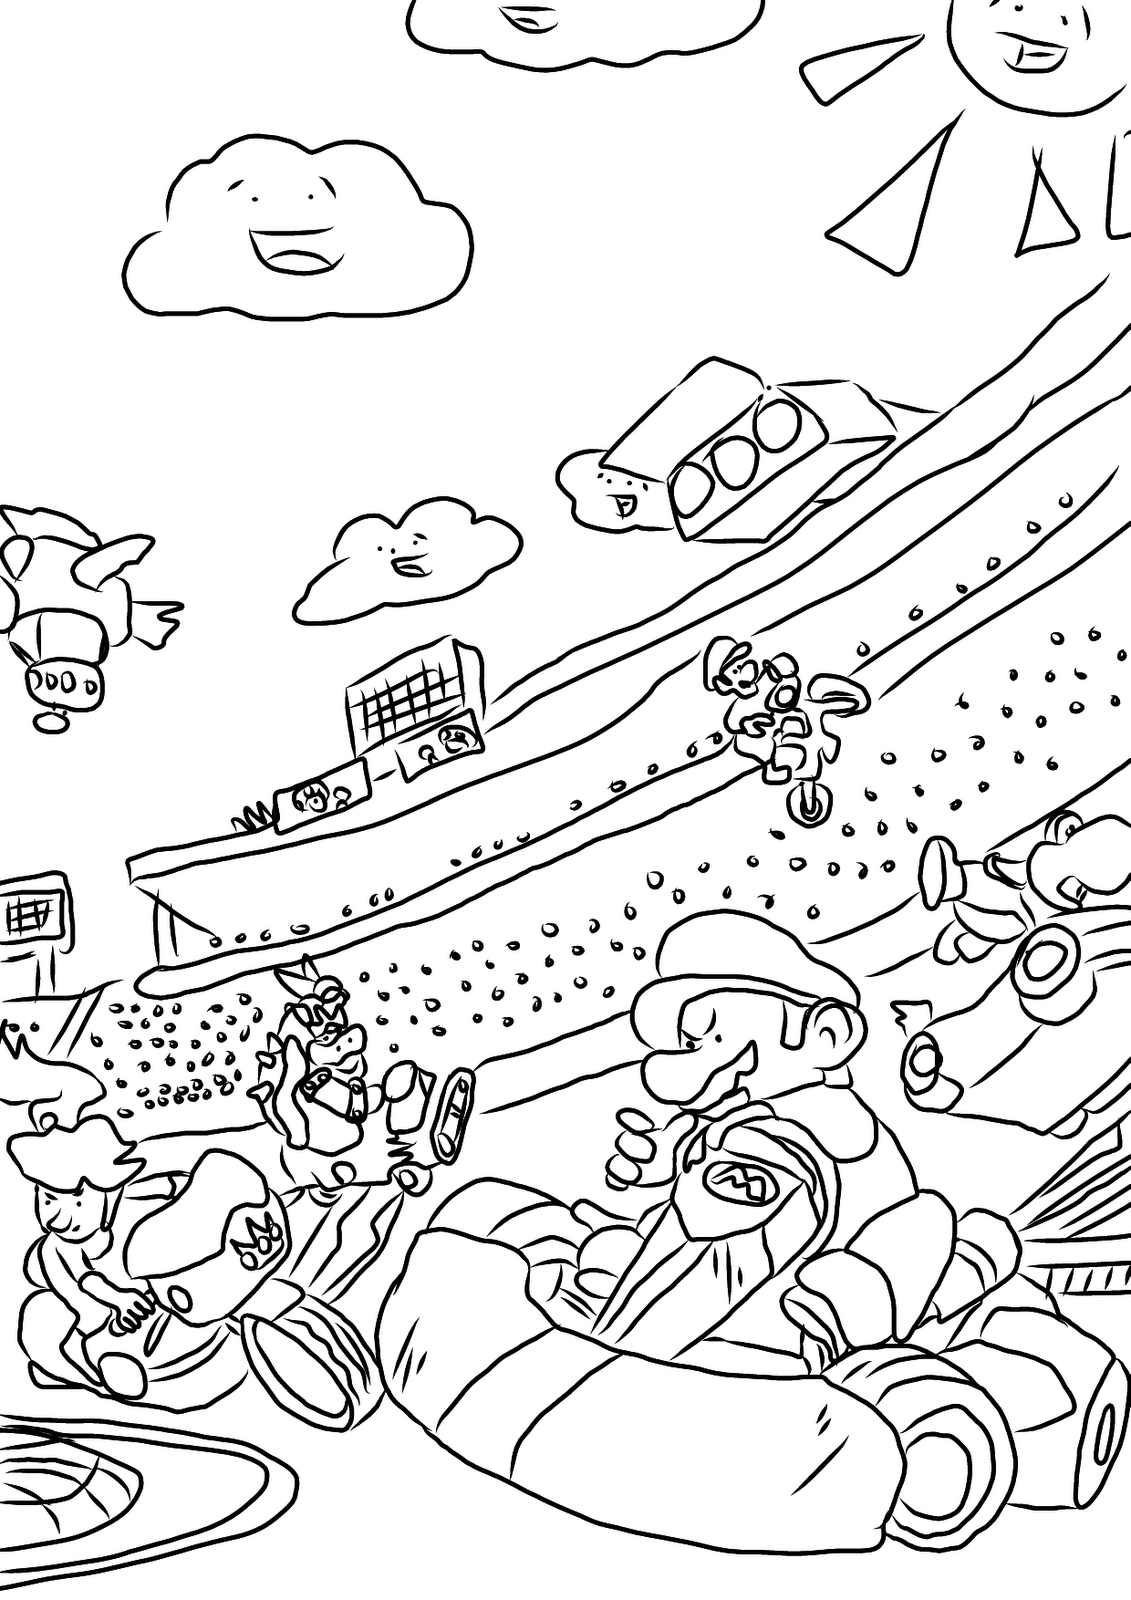 Free coloring pages of mario kart daisy for Mario kart ds coloring pages